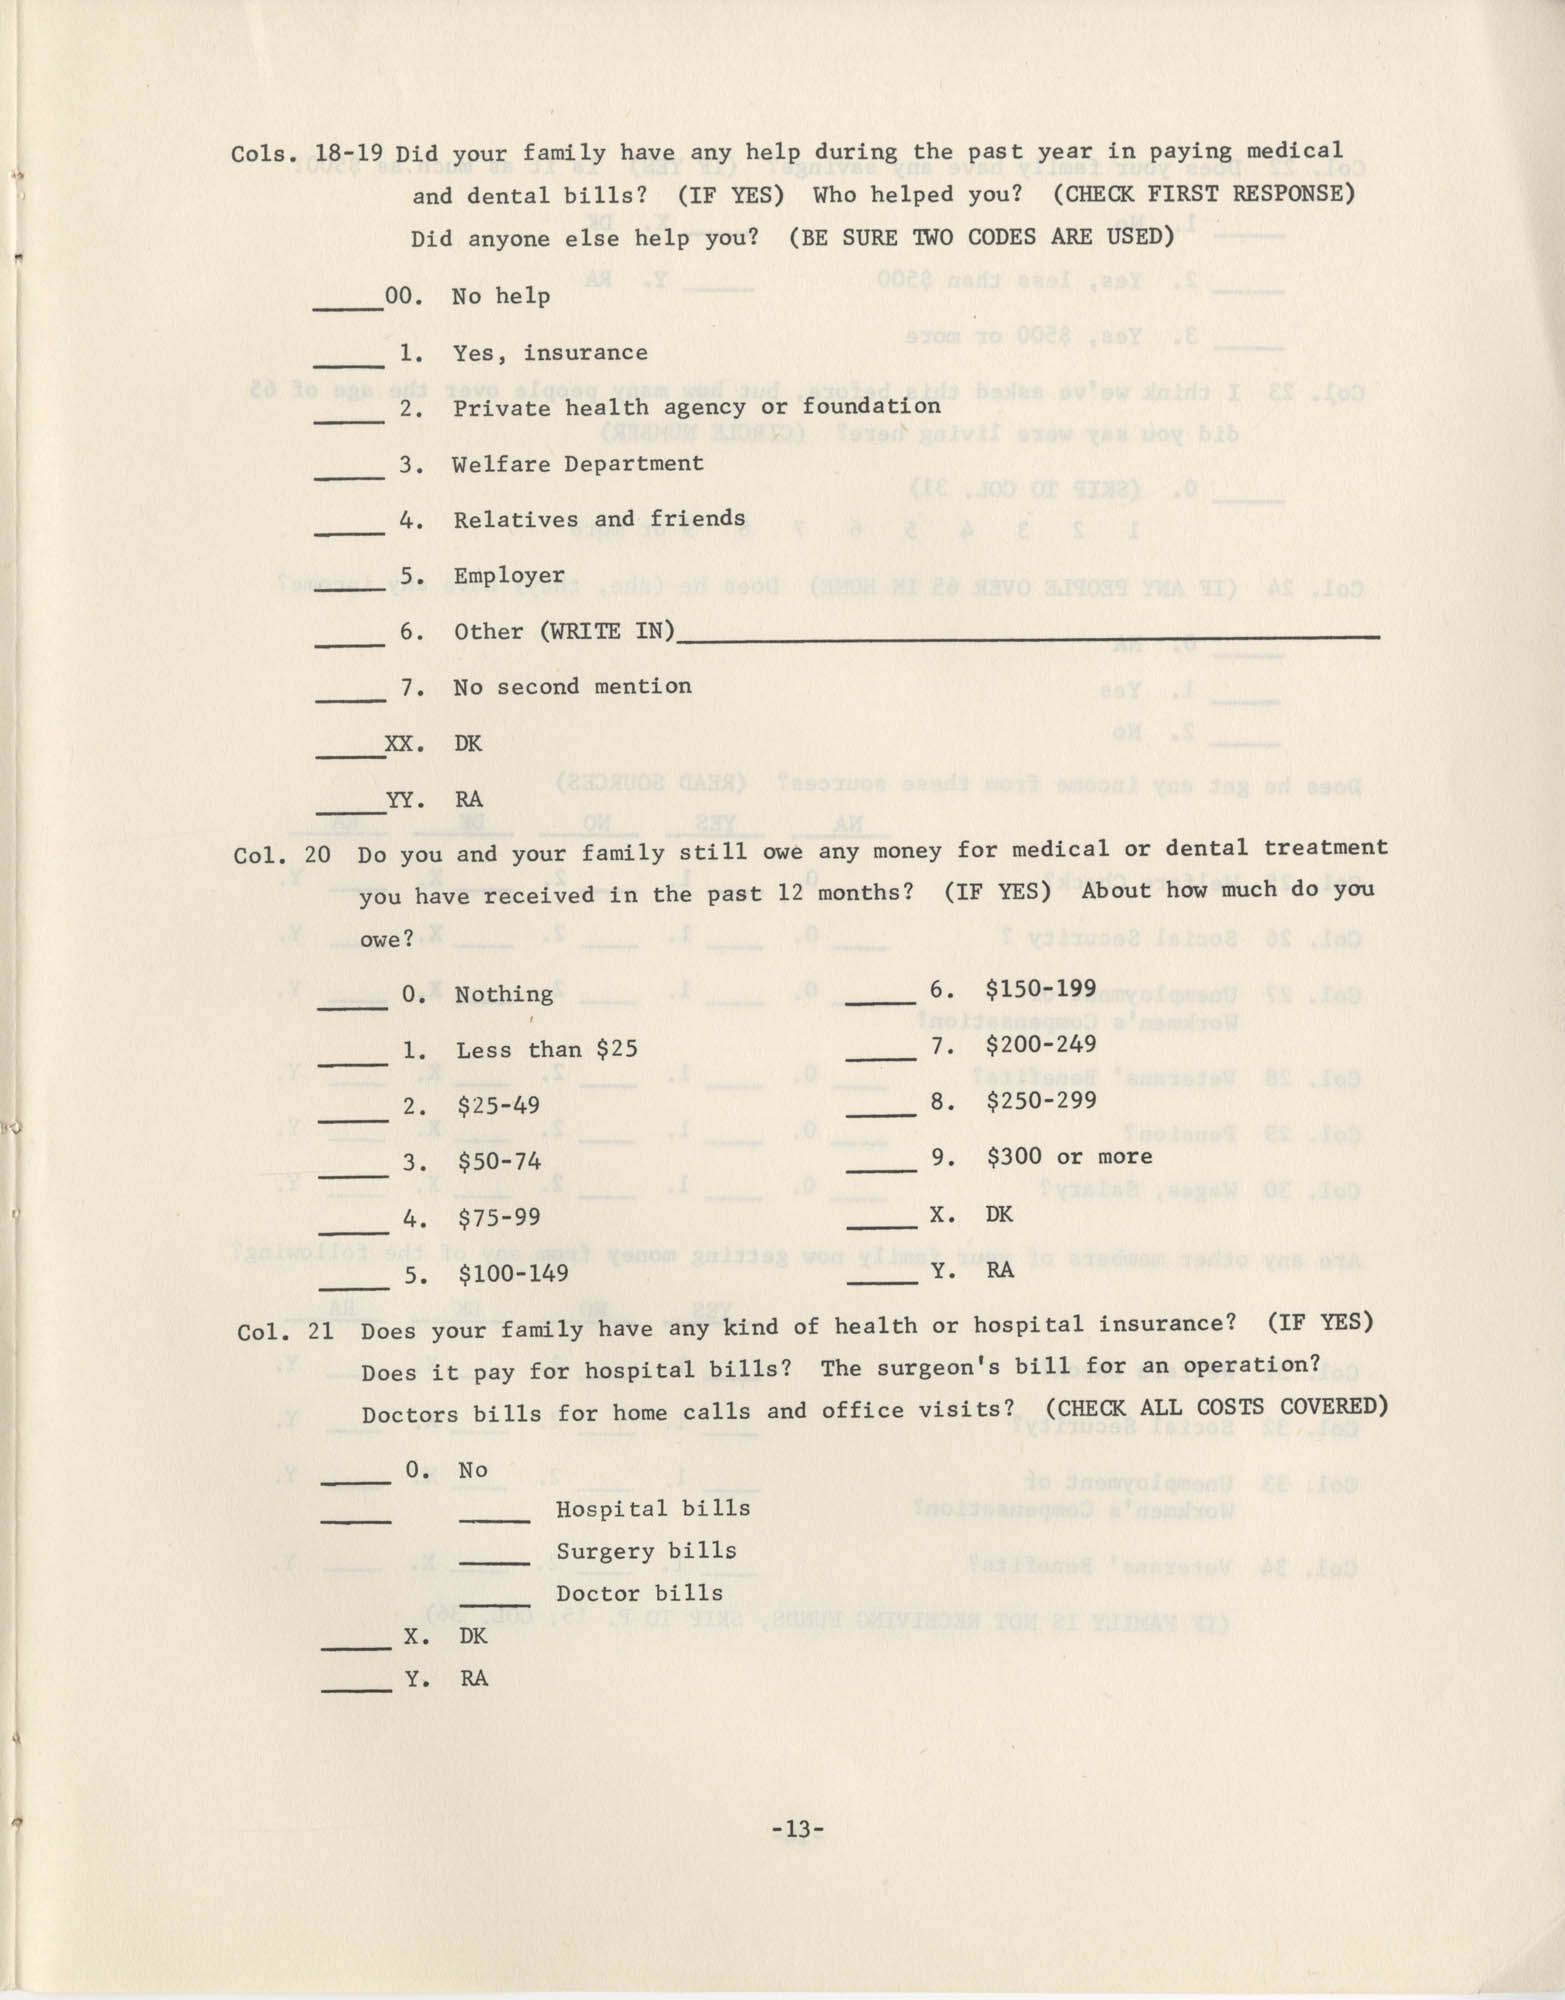 Household Questionnaire, Page 13